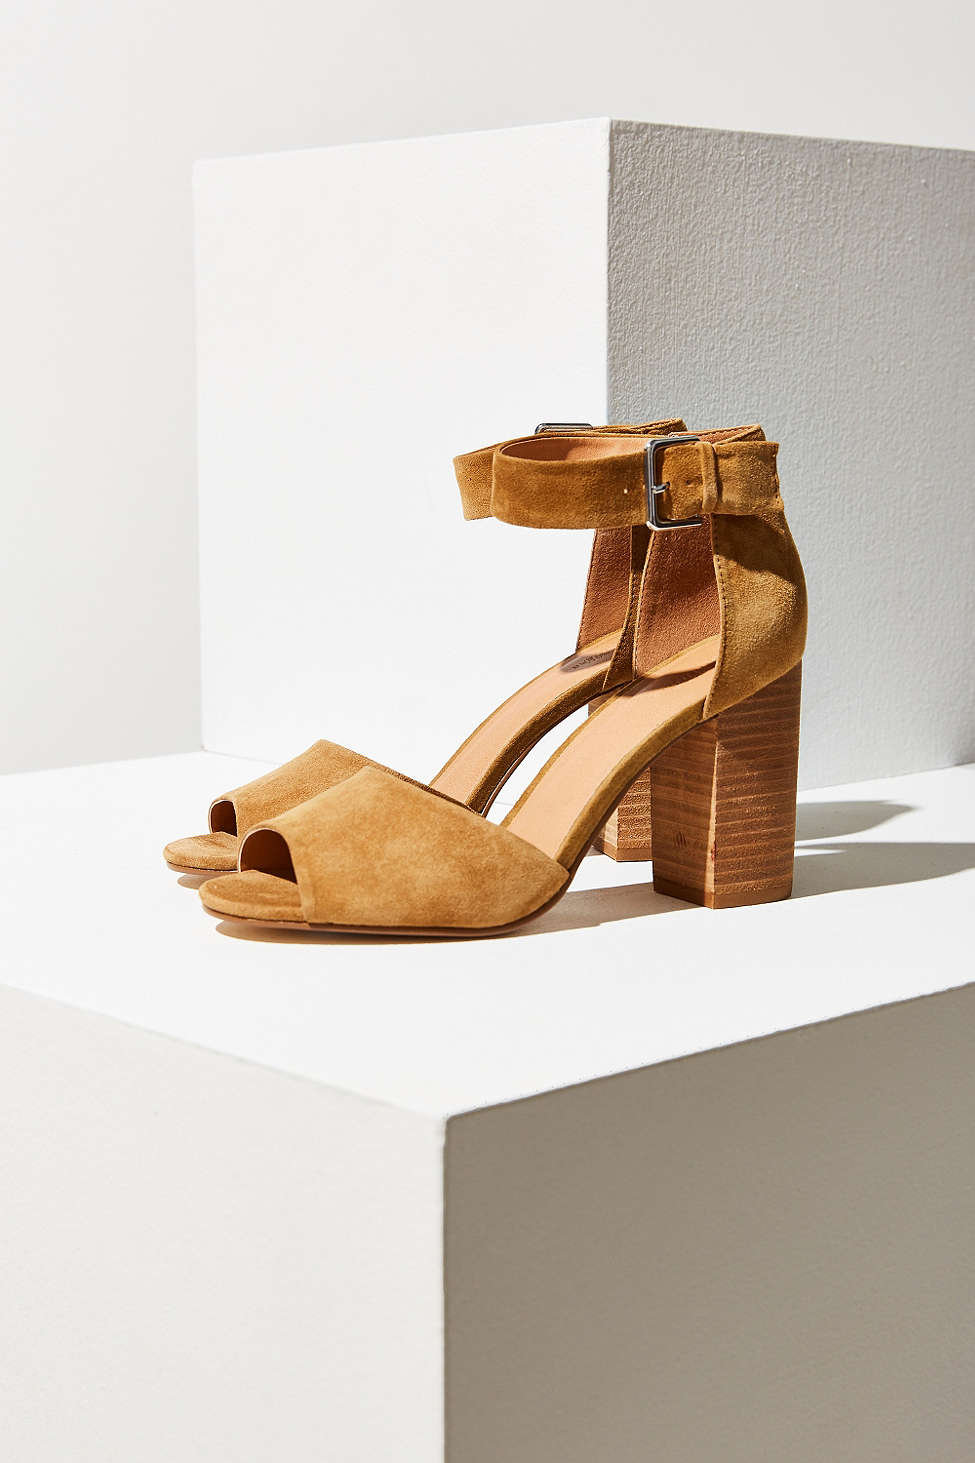 The Chunky Heel    - Although stilettos will forever be a classic in any closet, the big trend this year is the chunky heel. And if you're anything like me, jump on this trend train and never get off. They're so so much easier to maneuver and more comfortable to wear than a skinny heel.